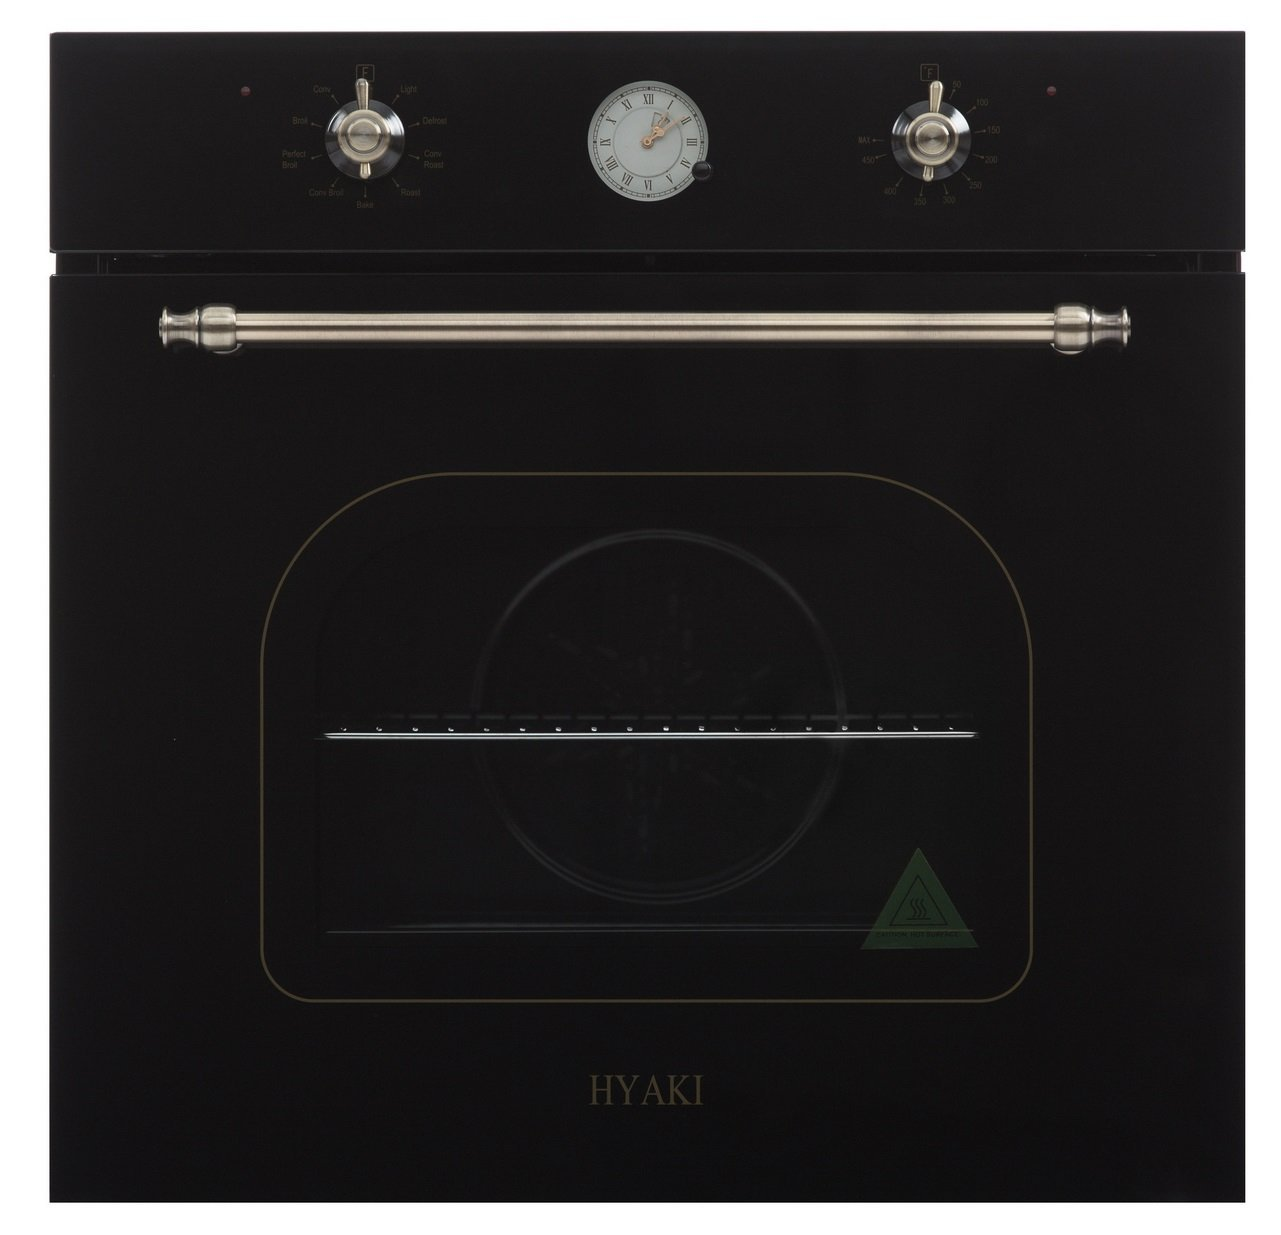 "Hyaki 24"" Antique Retro Design Built in Electric Single Wall Oven 220V HYK-24WOGD"